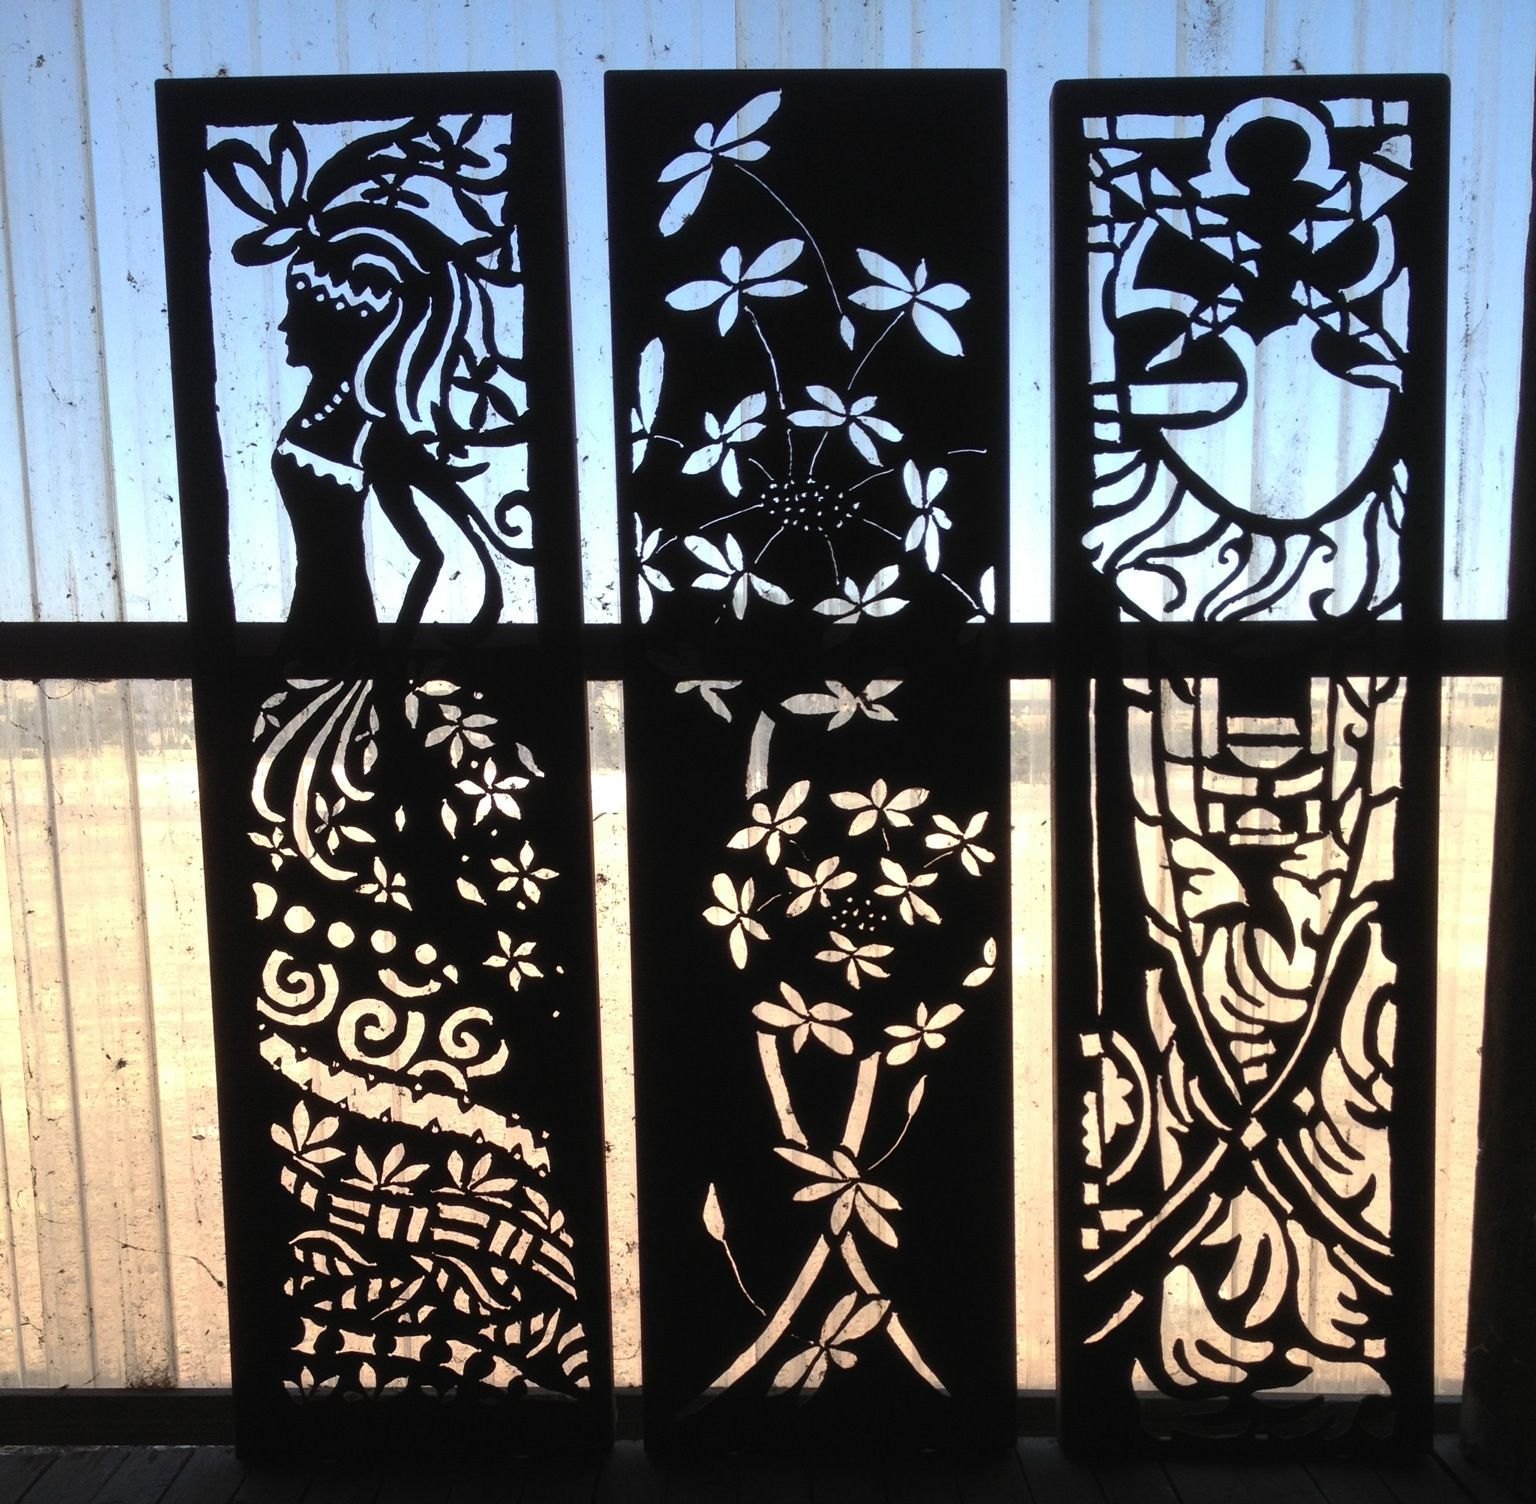 Design elements plasma cutting custom design plasma cutting artistic - Each Panel Designed And Created By Me Using A Handheld Plasma Cutter And Corten Weathering Steel